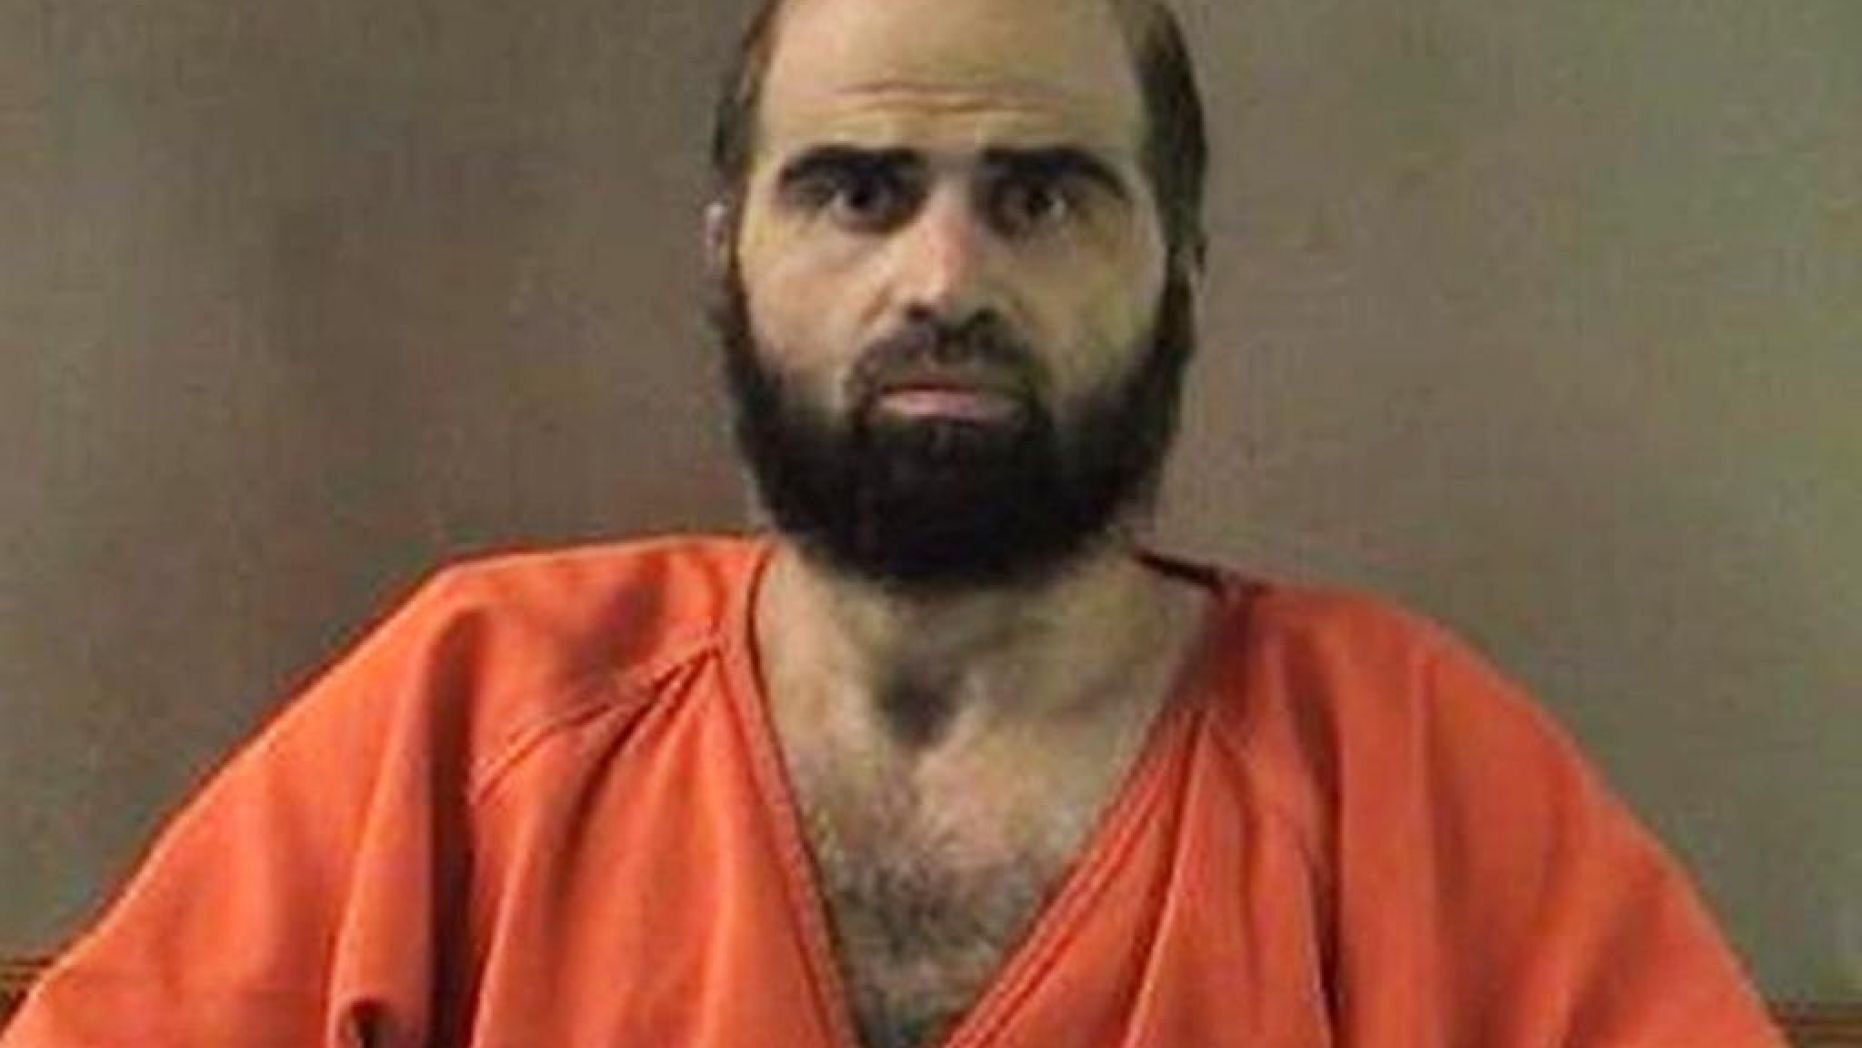 This undated file photo provided by the Bell County Sheriff's Department shows former Army psychiatrist Maj. Nidal Hasan. Hasan, who killed 13 people in a 2009 shooting spree at a Texas Army base, has a court hearing in his case Thursday, Jan. 29, 2015 at Fort Leavenworth, Kansas, where he is being held on the military death row.